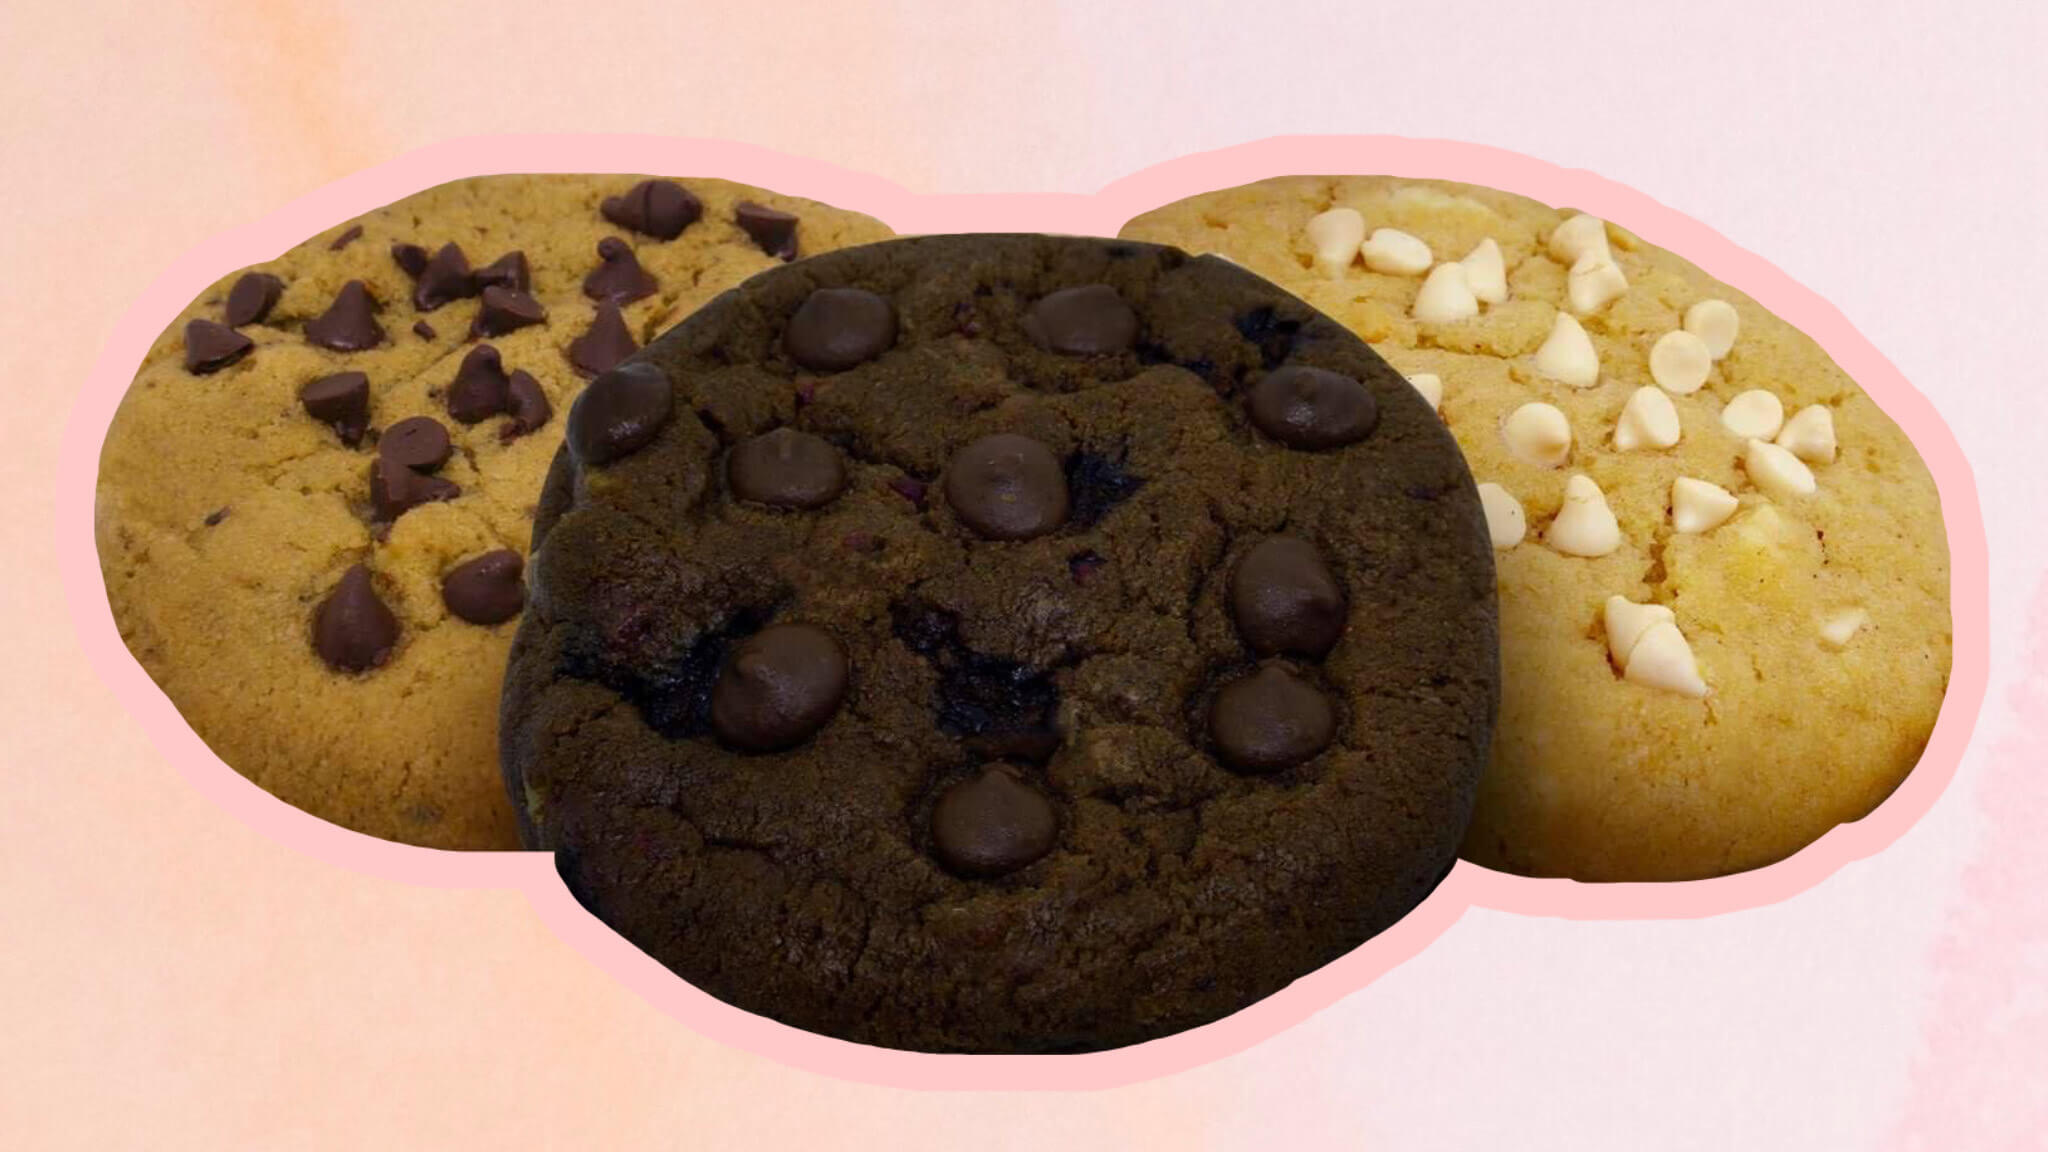 FamilyMart Cookies Are Back with Two New Flavors